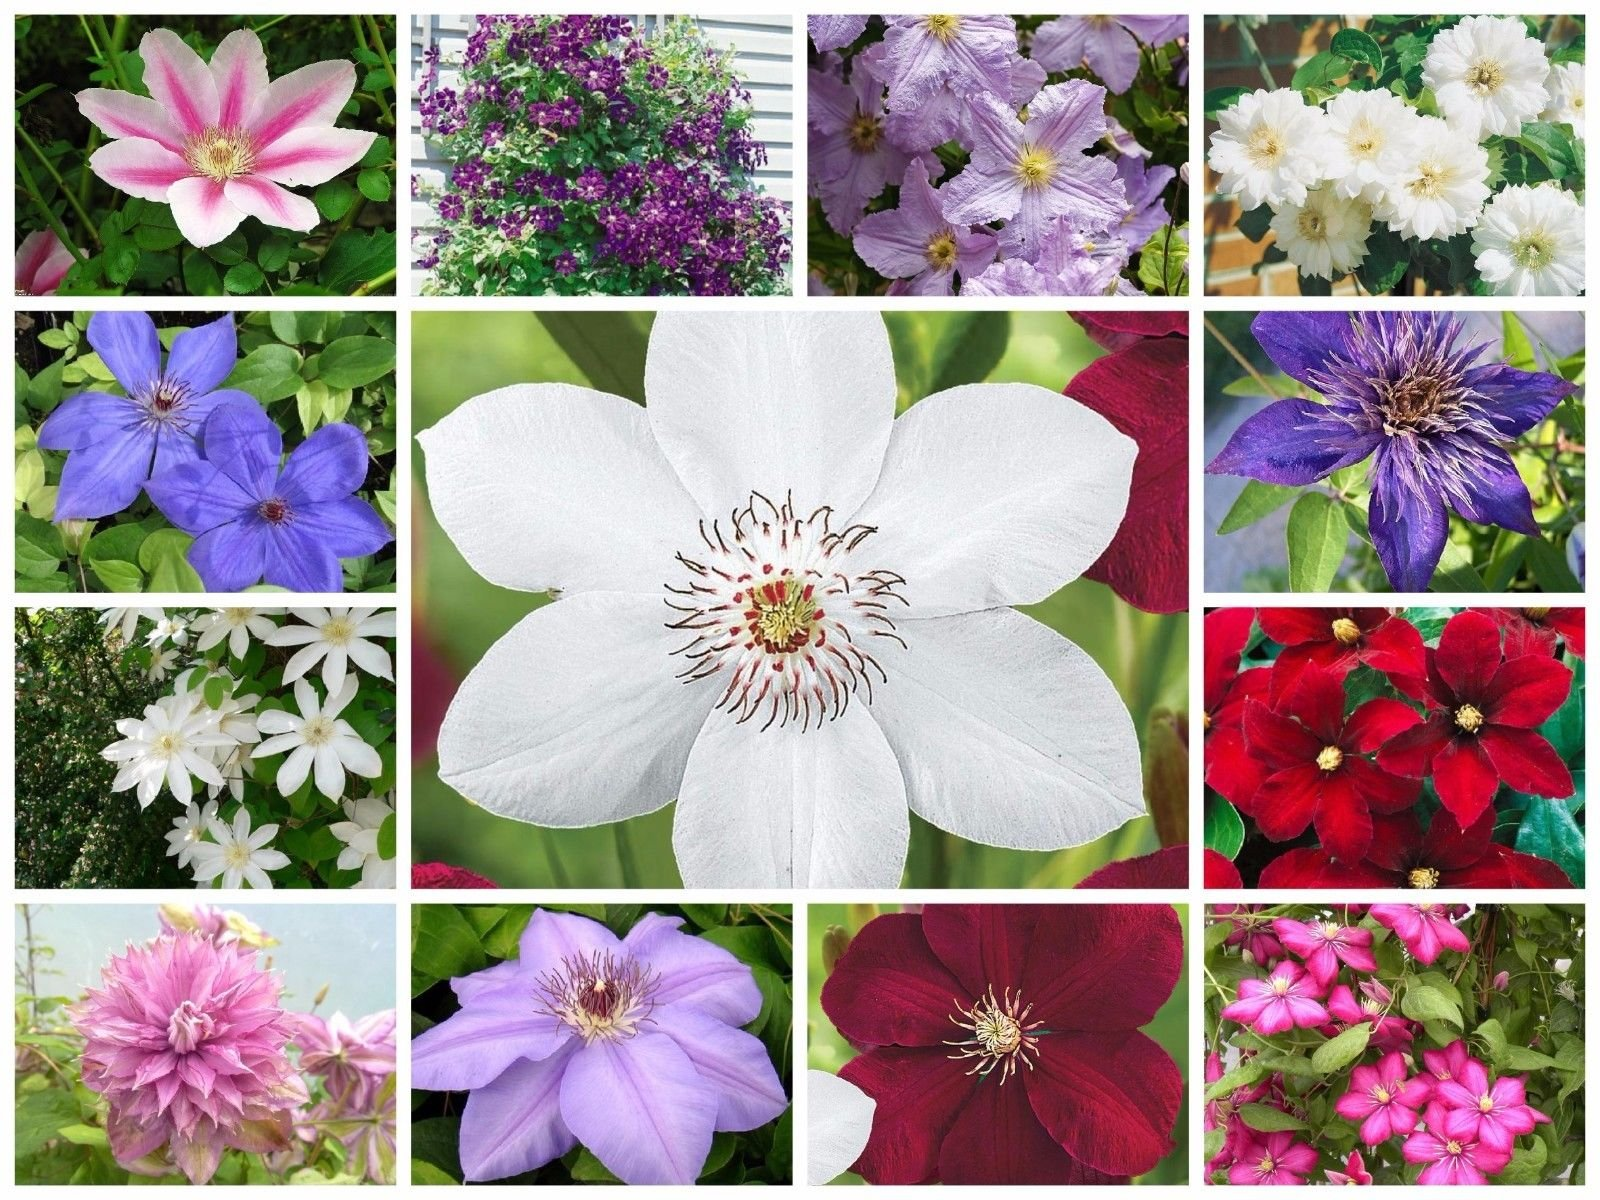 Garden Wonder Clematis Mix (3 Bare Root) Early,Large-flowered Vine